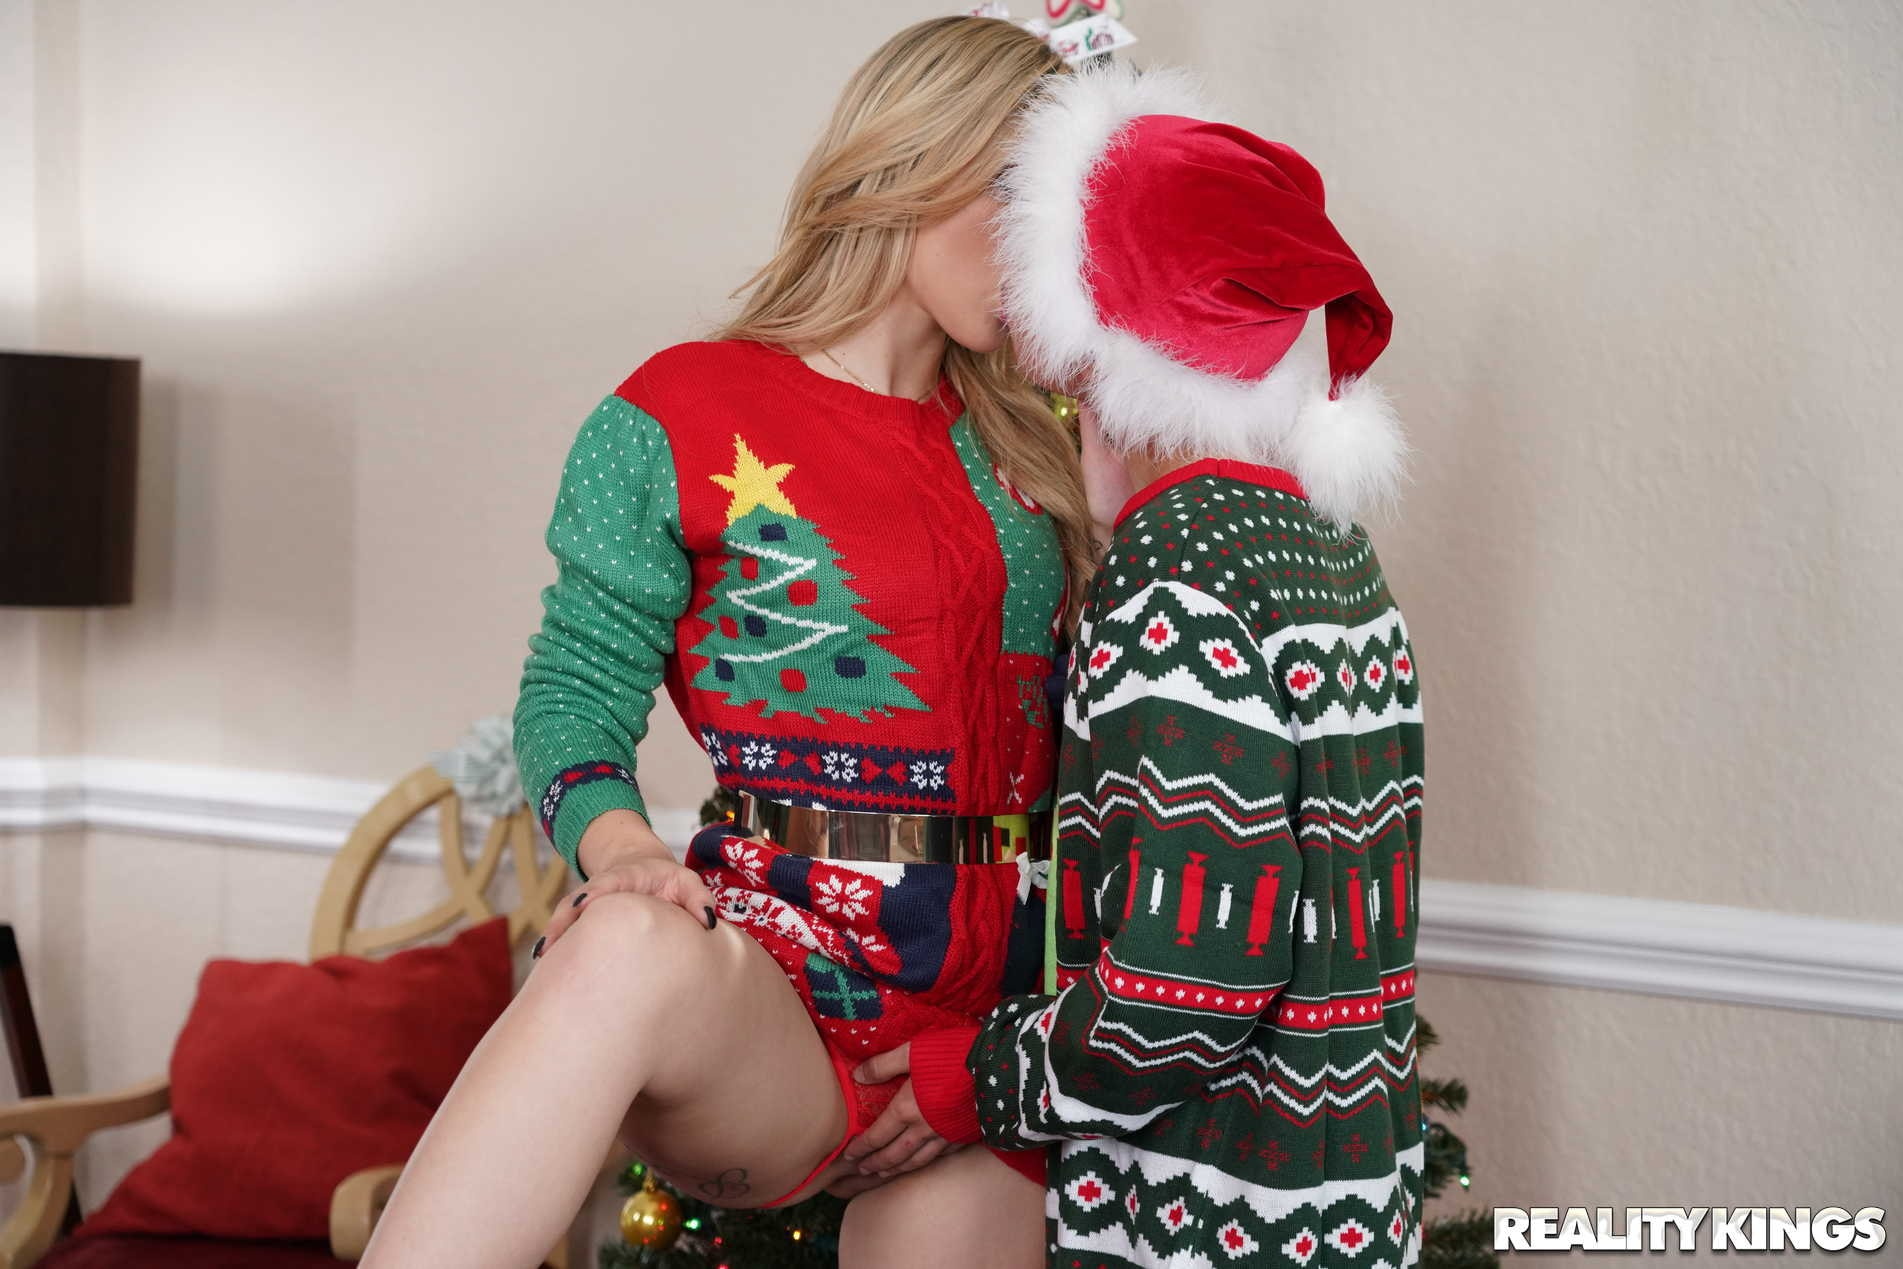 Reality Kings 'Keep The Xmas Lights Tied On' starring Cory Chase (Photo 90)